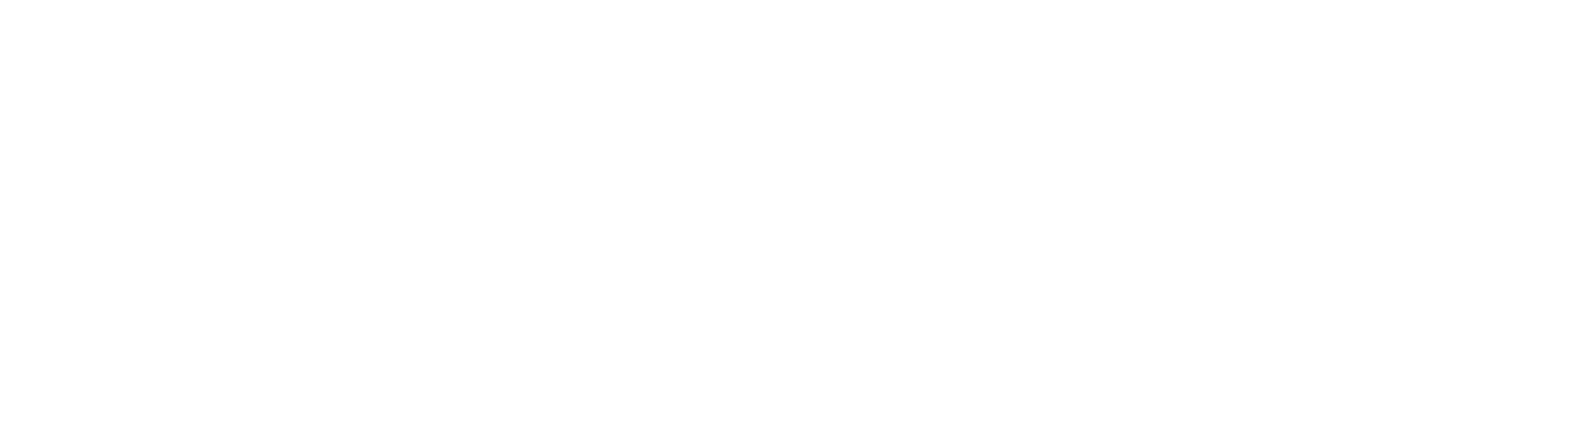 Mansour Real Estate Group